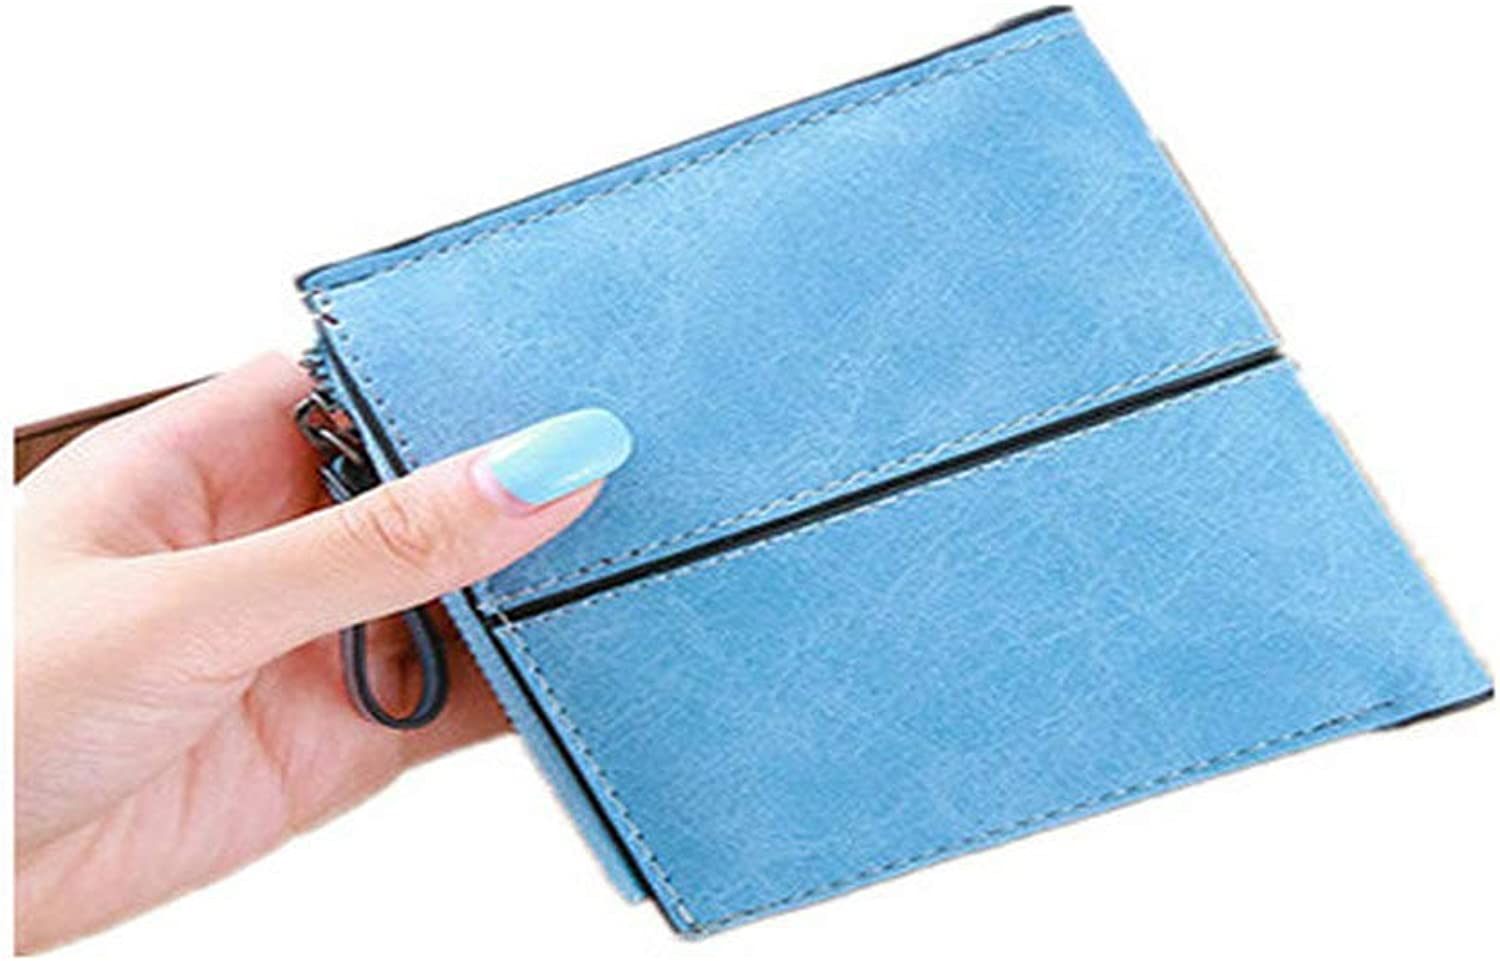 ACHKL Women Short Simple Retro Personality Change Wallet Purse Card Bag ACHKL (color   color bluee, Size   OneSize)